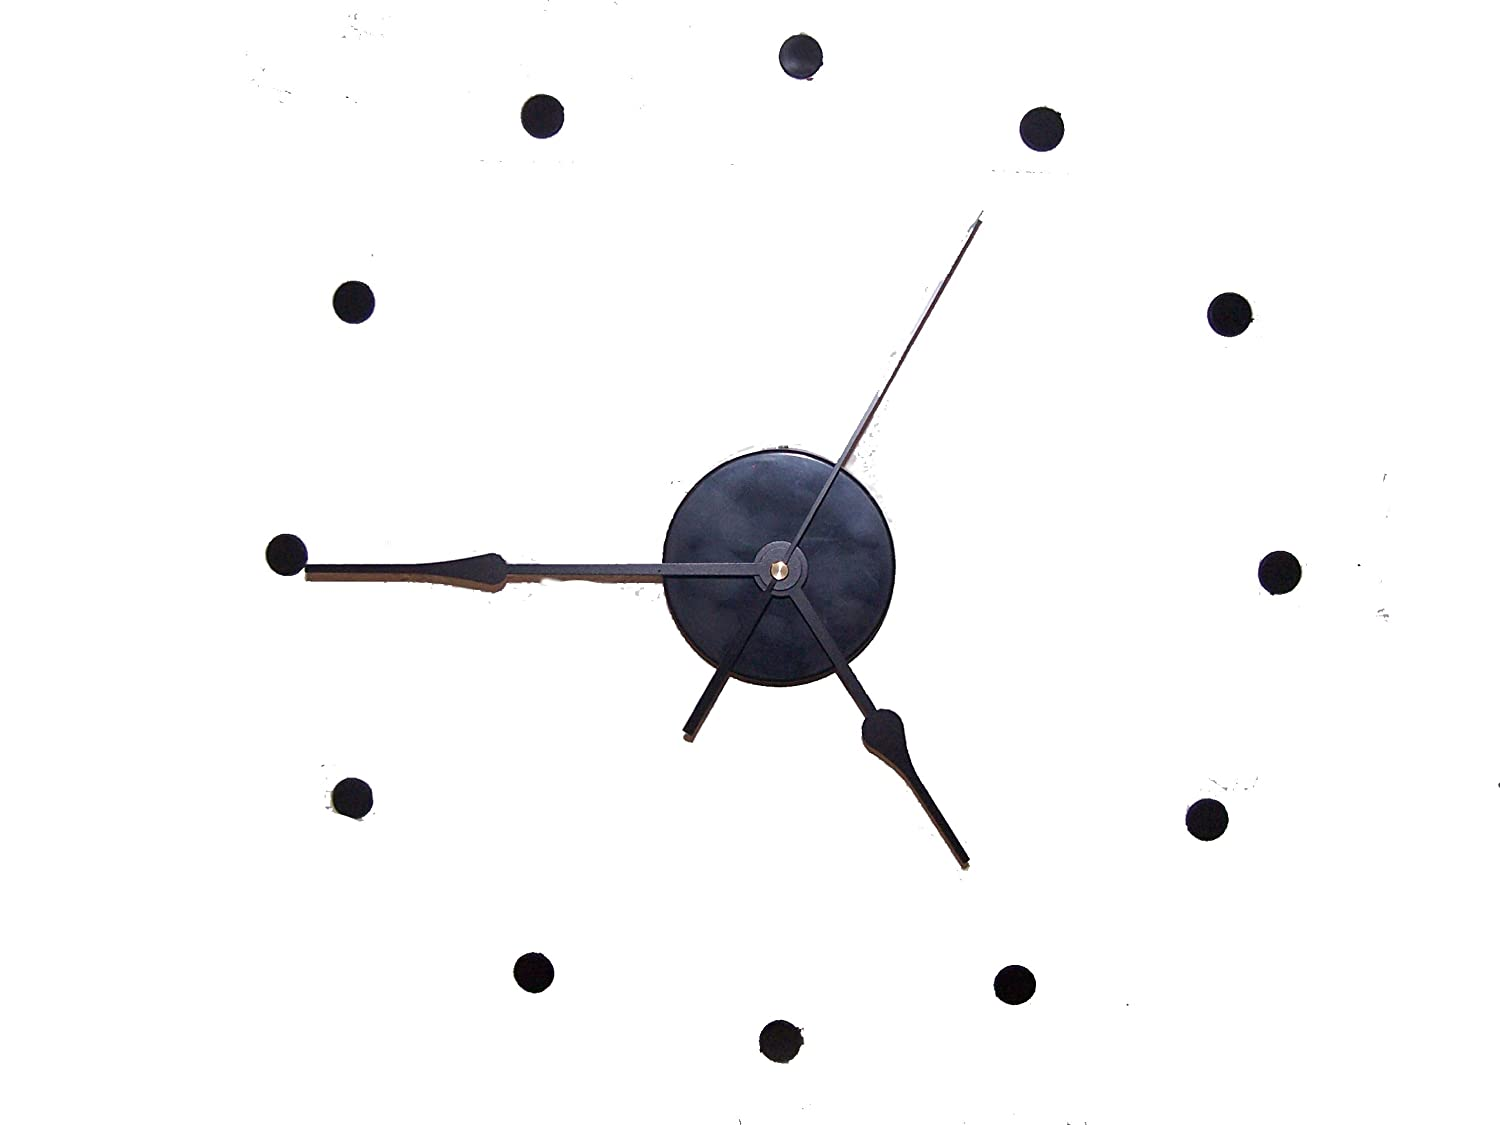 Amazon large wall clock kit continuous sweep movement 8 amazon large wall clock kit continuous sweep movement 8 hands 69 second diy silent home kitchen amipublicfo Images